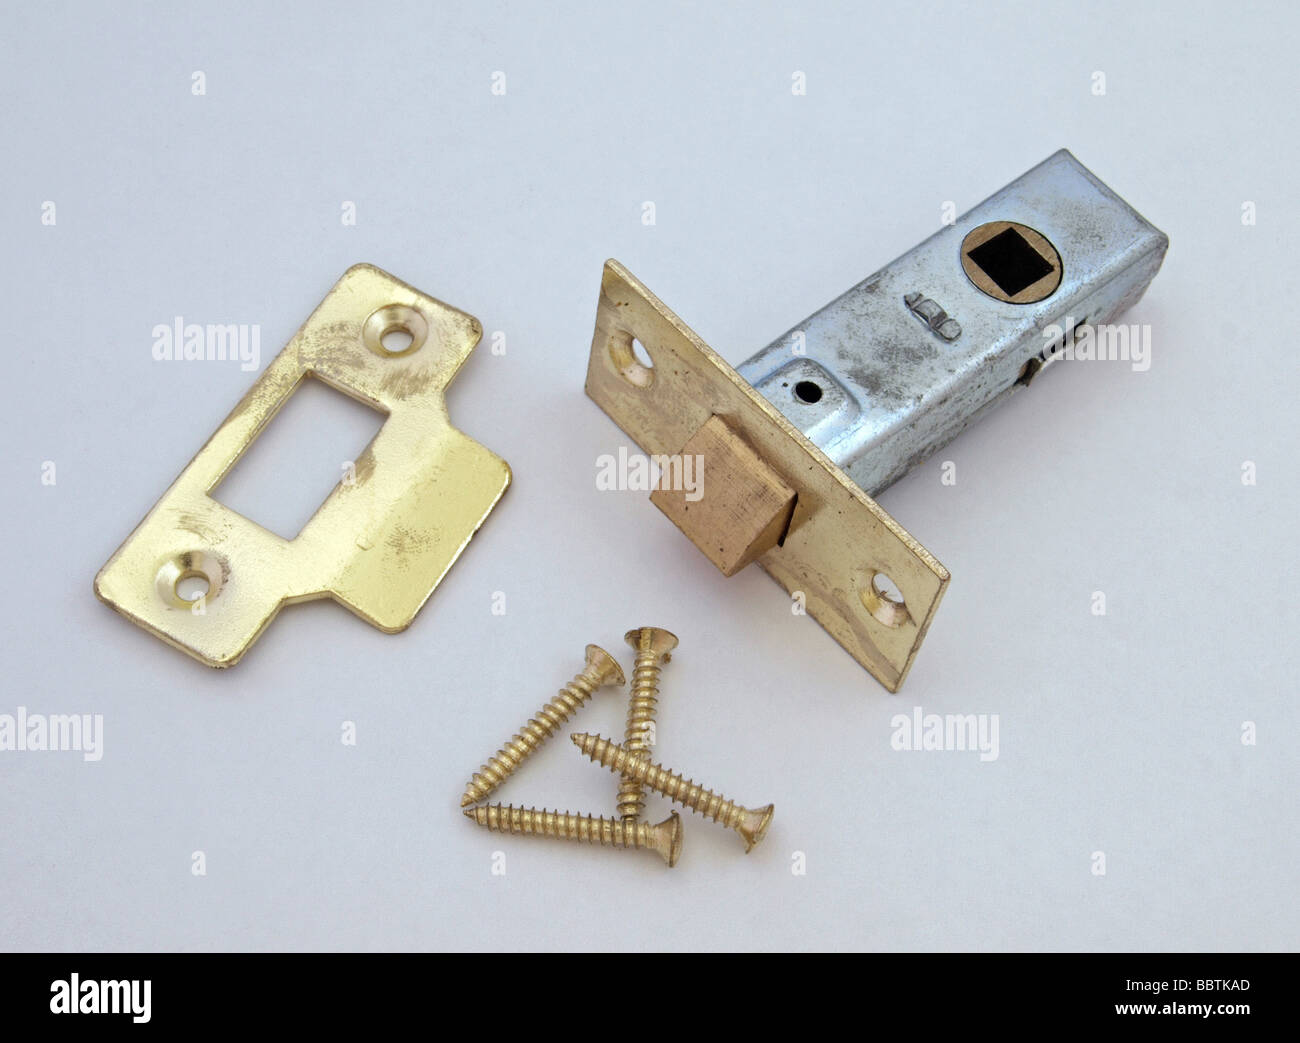 Lock to be fitted on an internal door - Stock Image